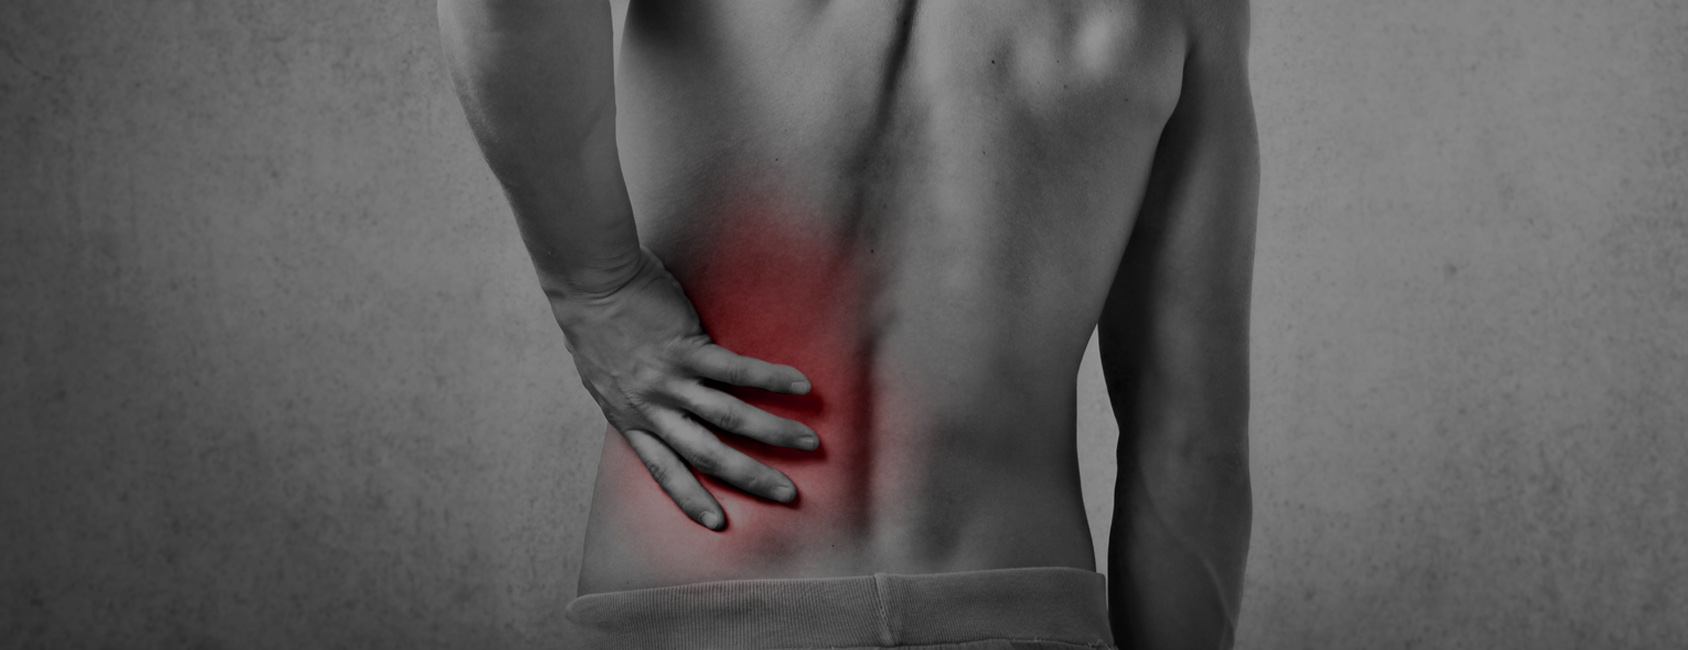 31 million Americans experience low-back pain.